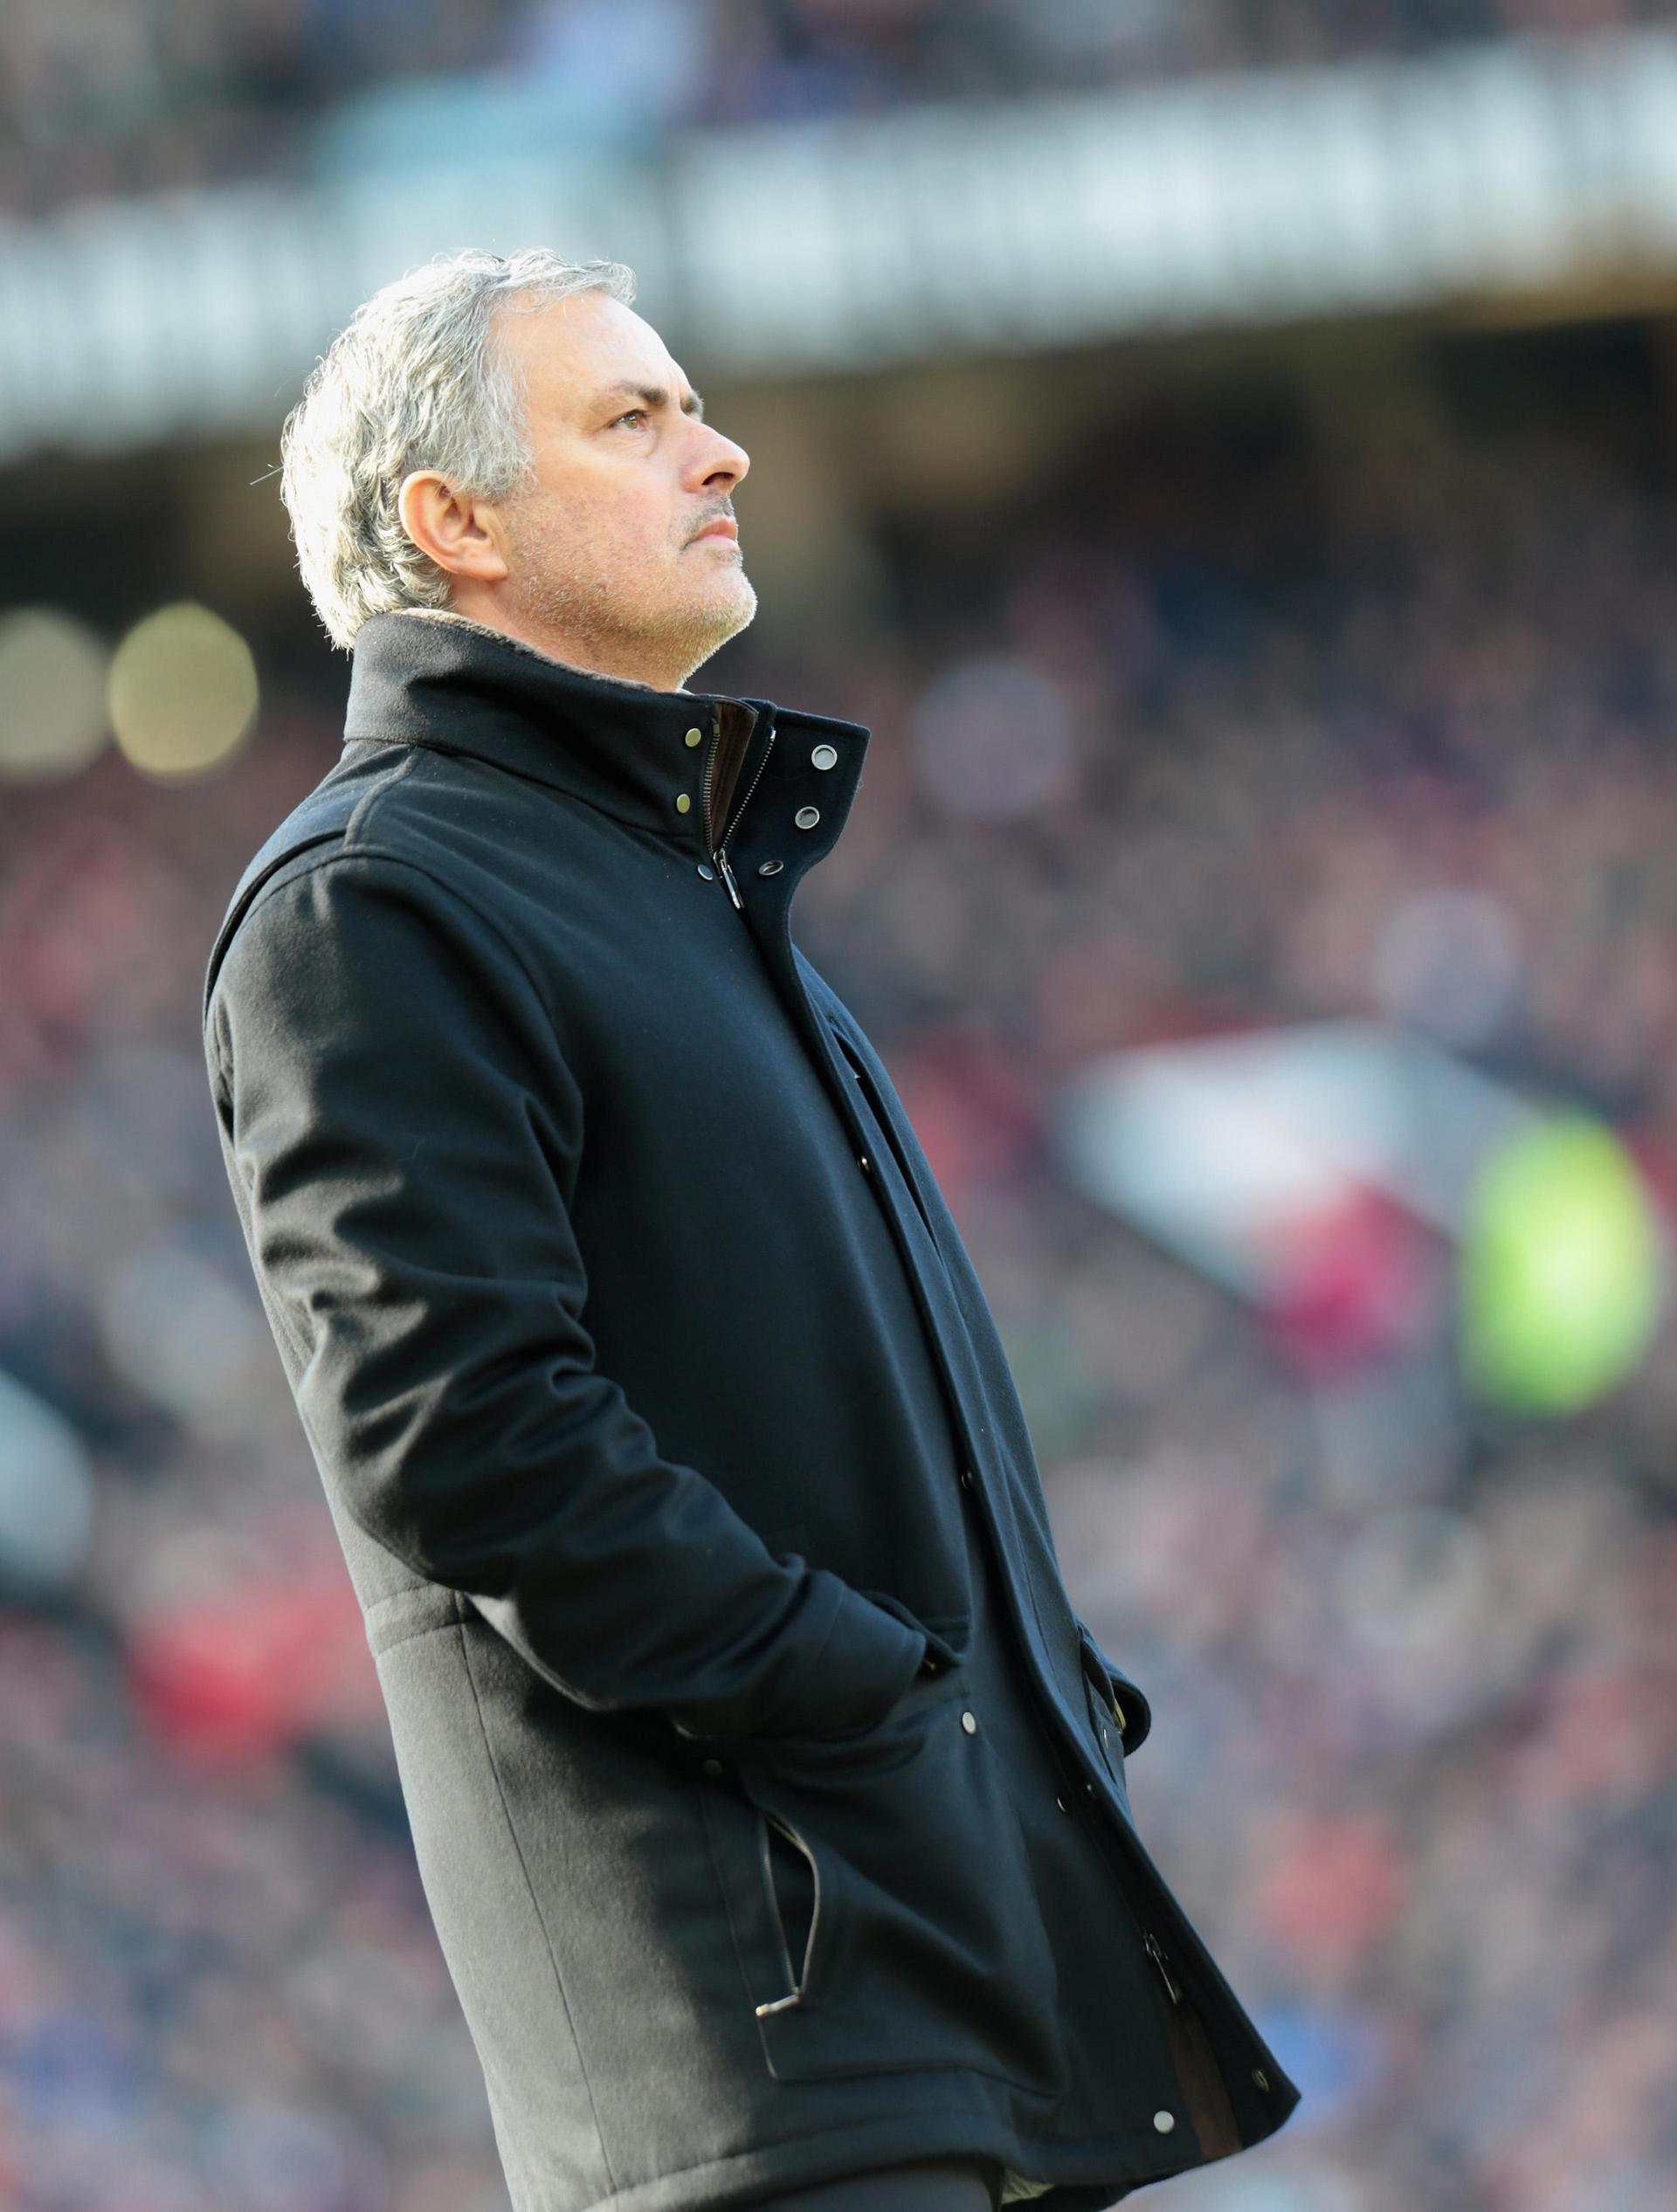 Jose Mourinho looks towards the stand during a match